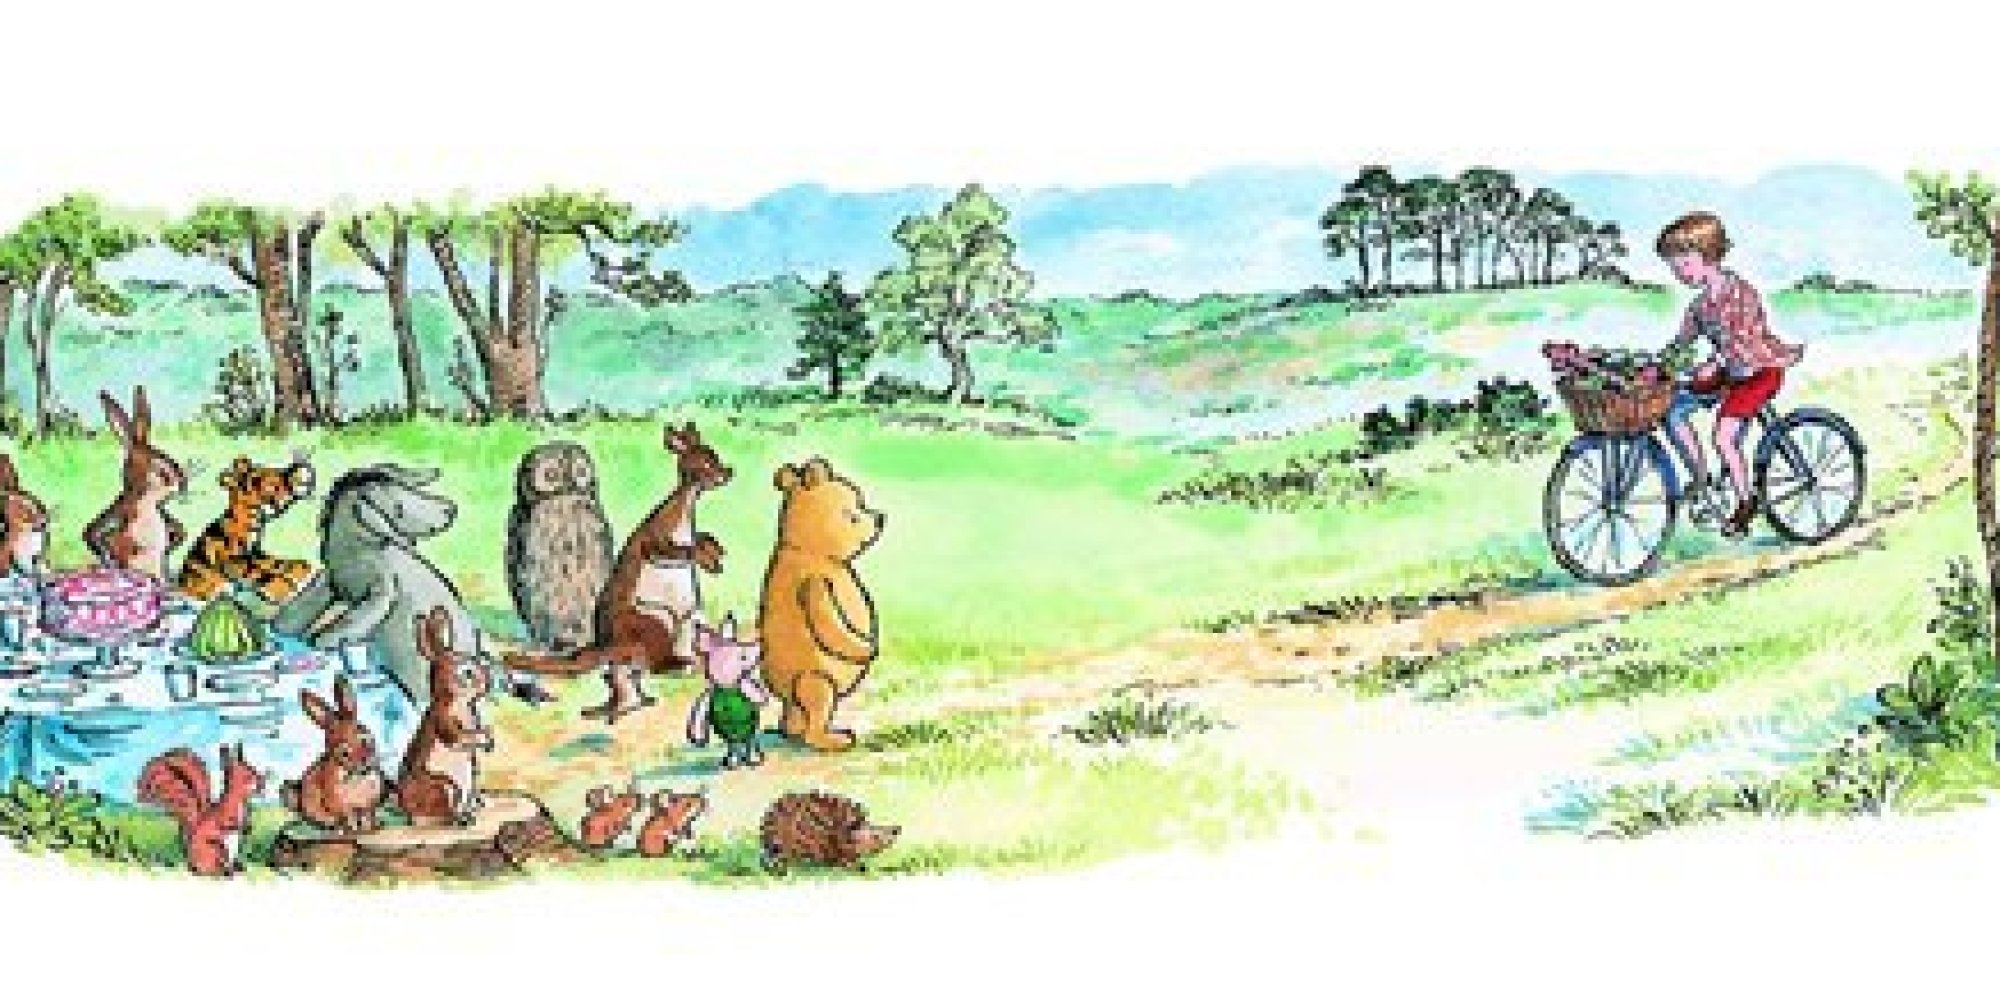 winnie the pooh grand adventure ending a relationship